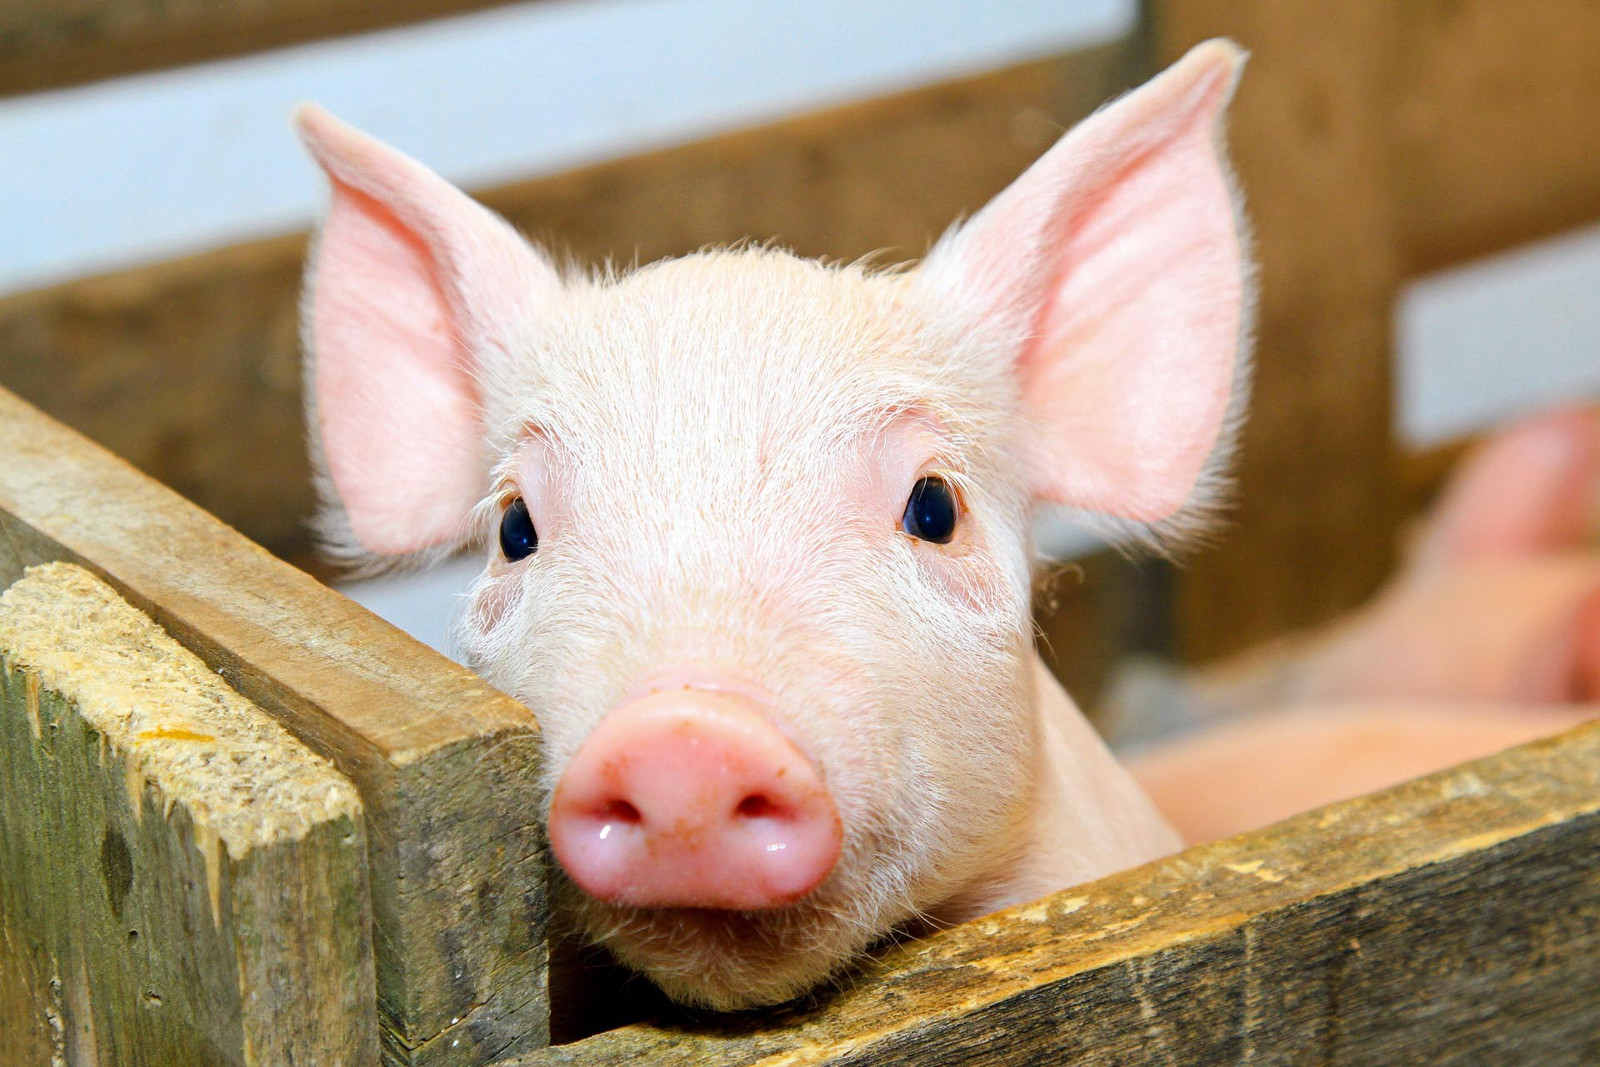 The Animal Agriculture Industry Fails Again Trying to Silence Whistleblowers